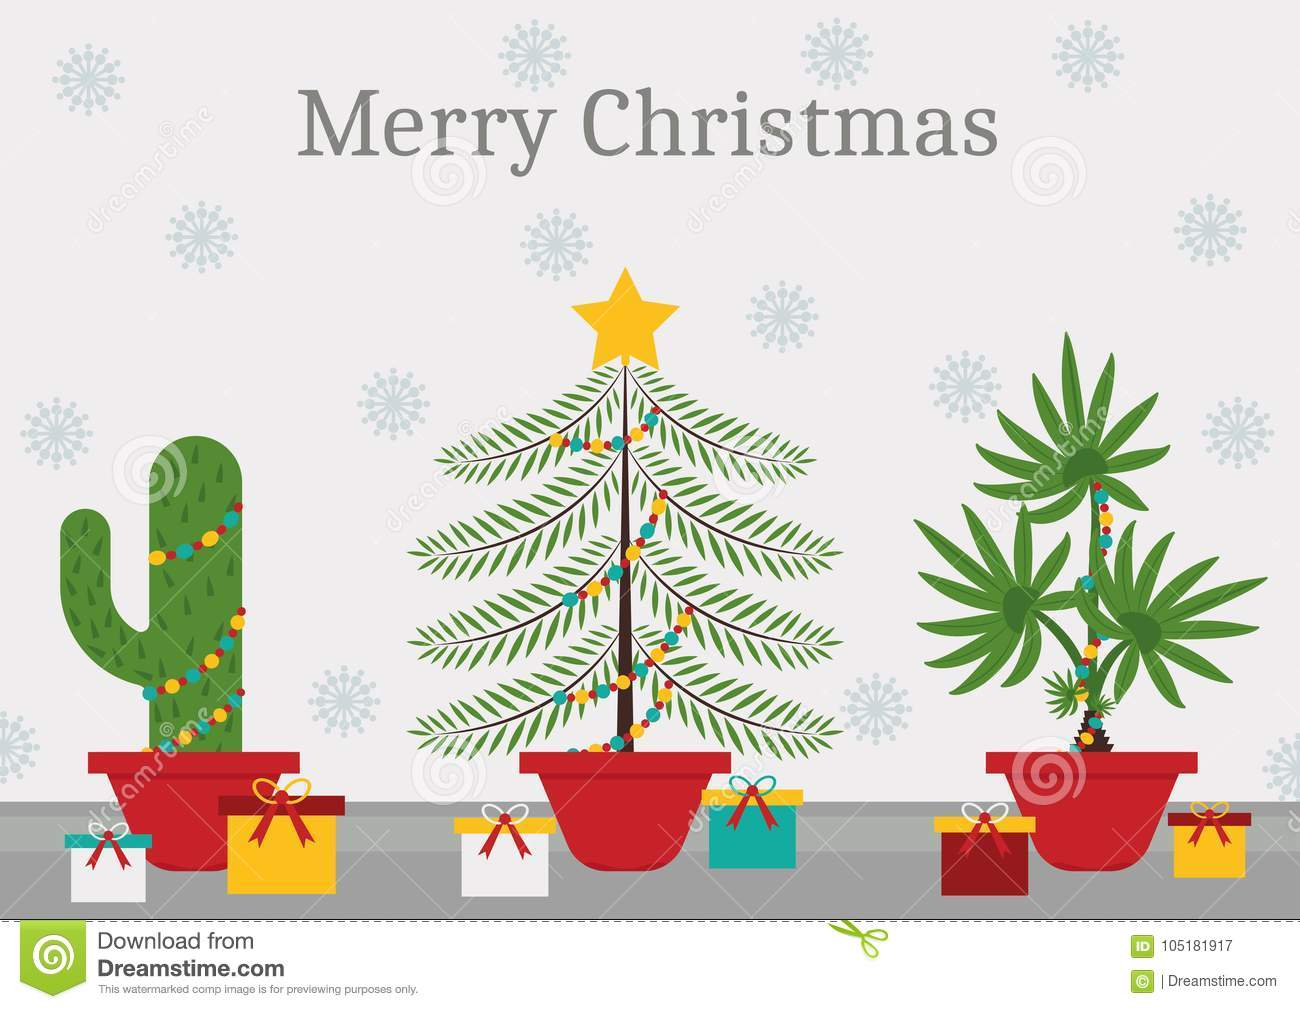 a cactus spruce and a palm tree with christmas decorations and lights